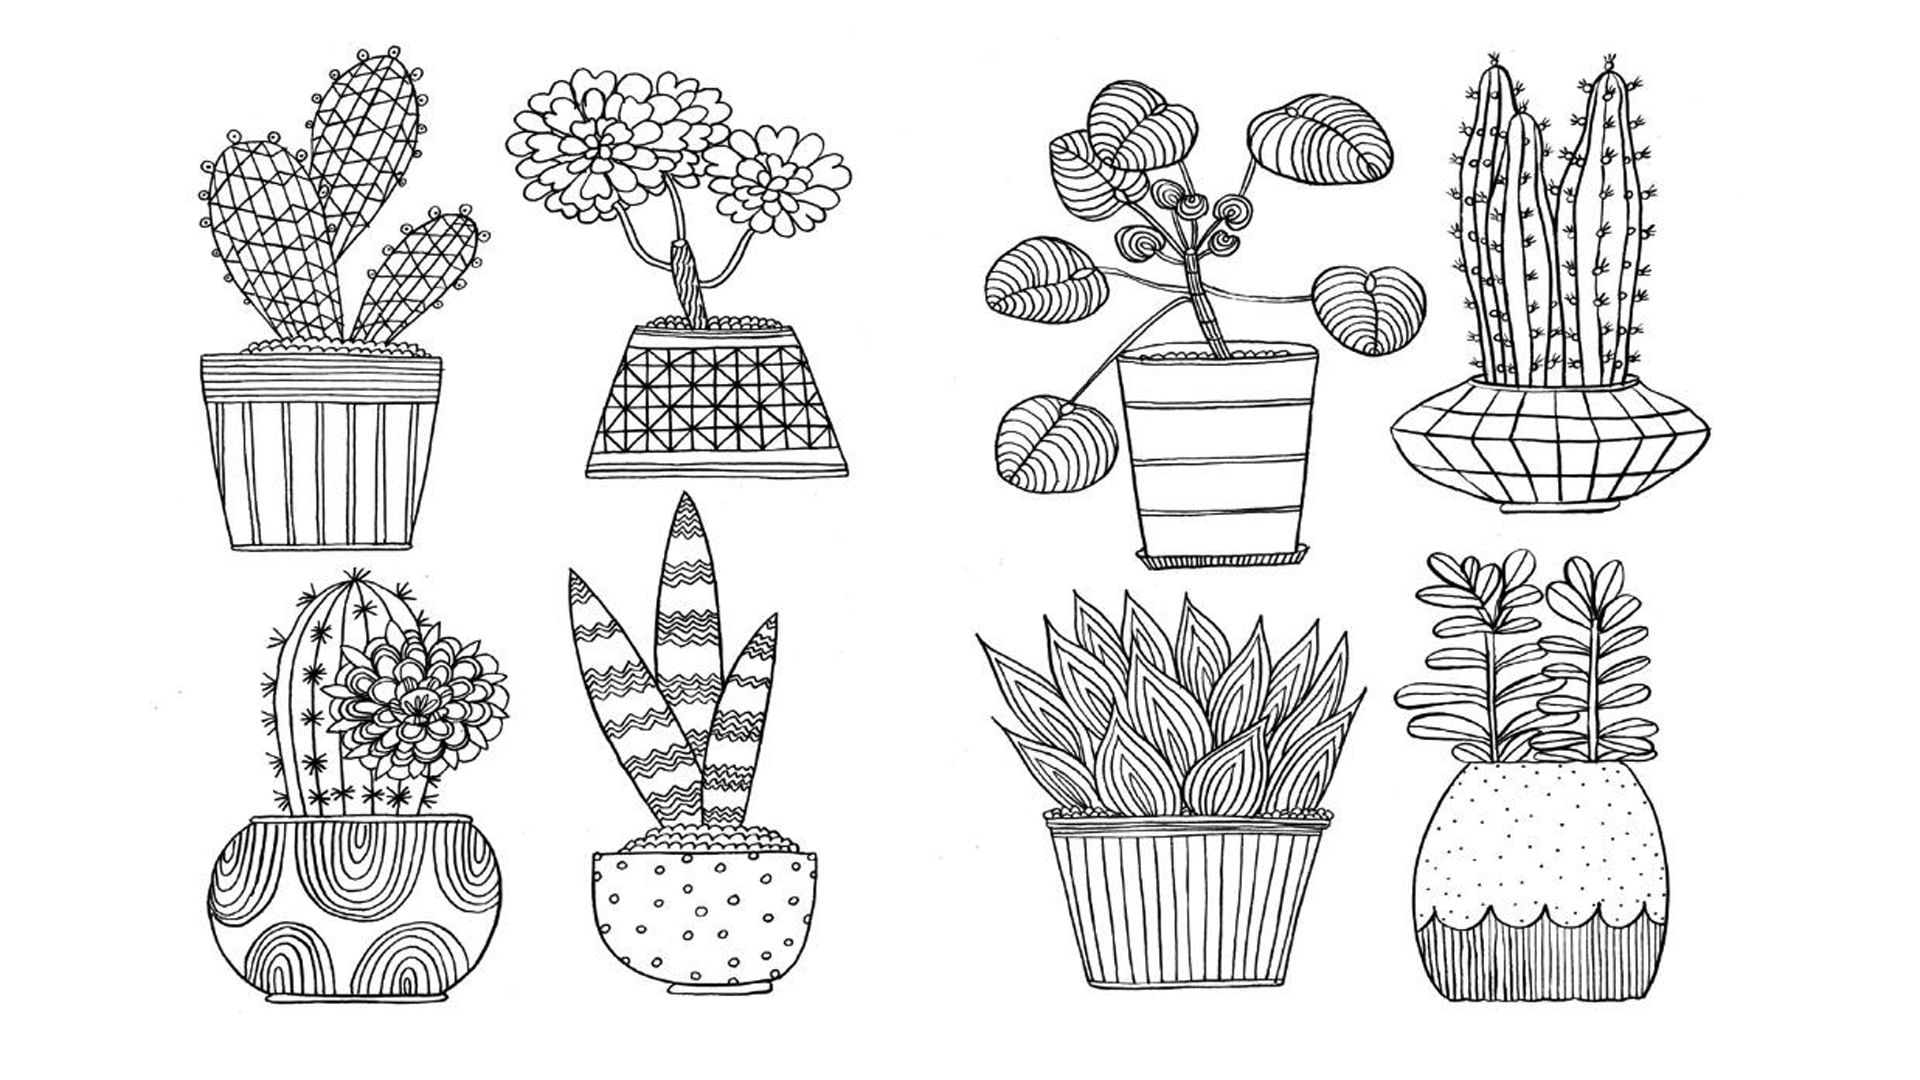 Colouring In For Grown Ups Mindfulness Colouring Botanical Line Drawing Coloring Pages